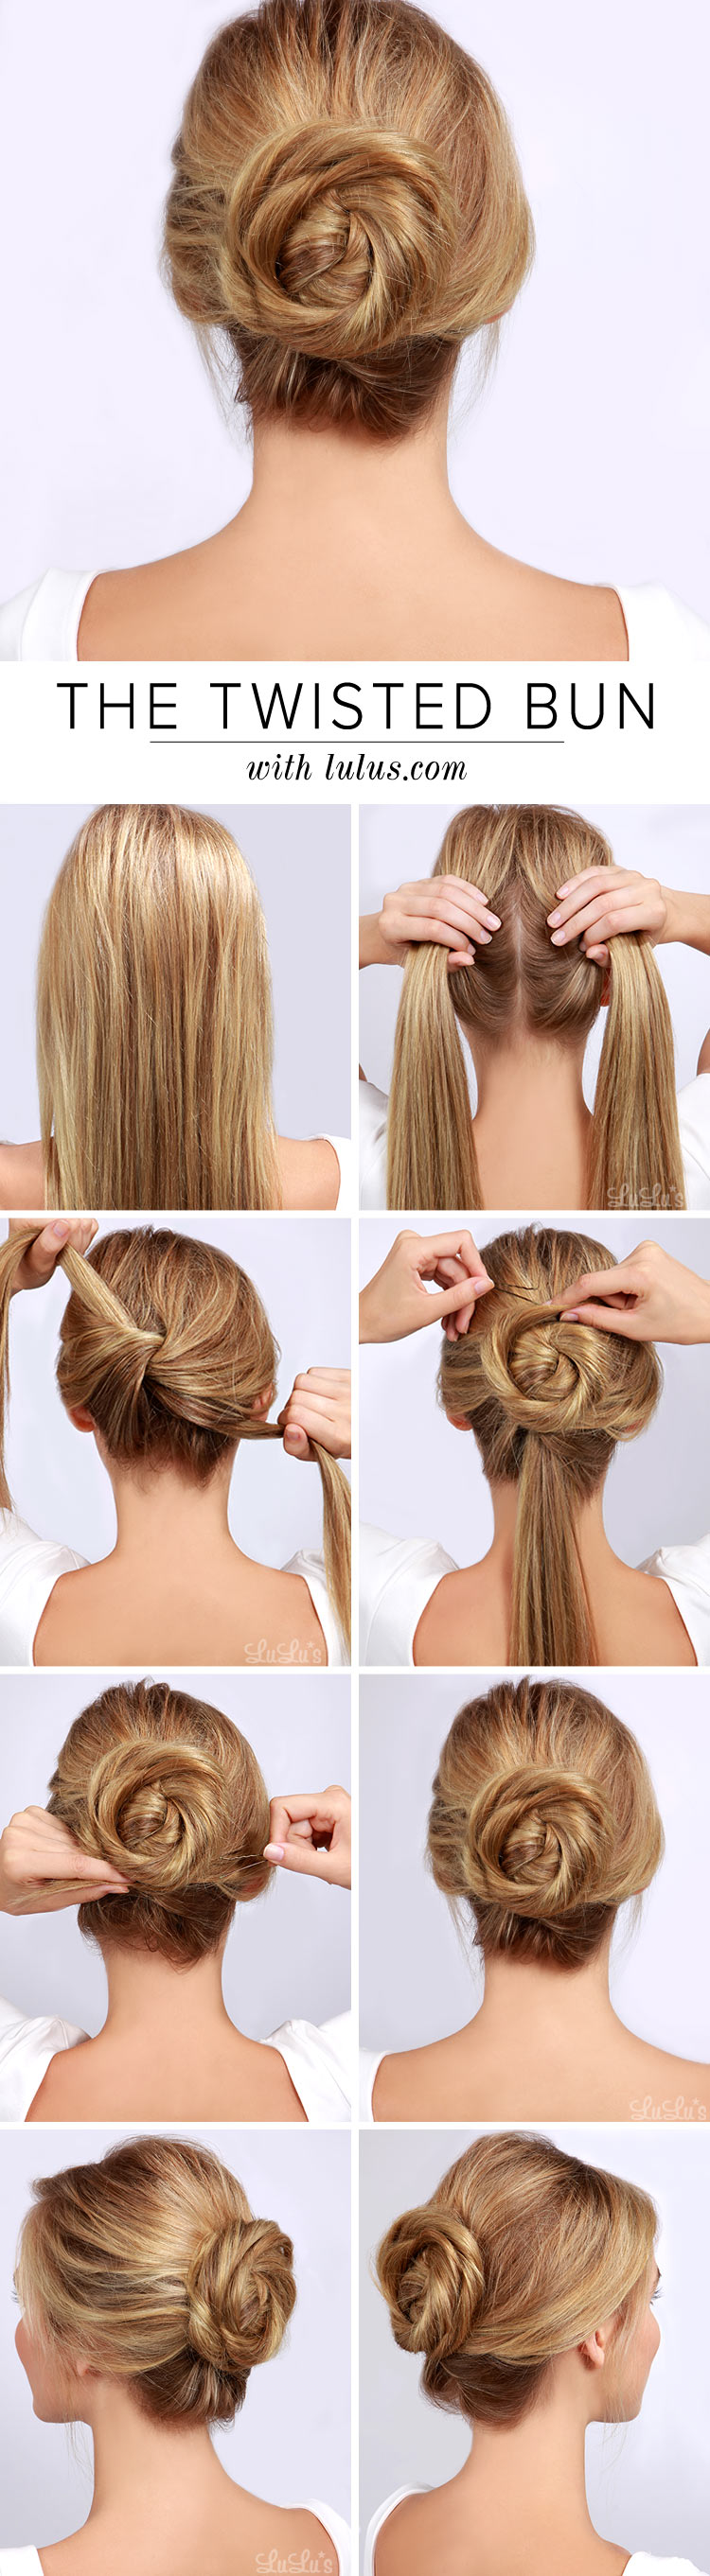 Twisted bun diy